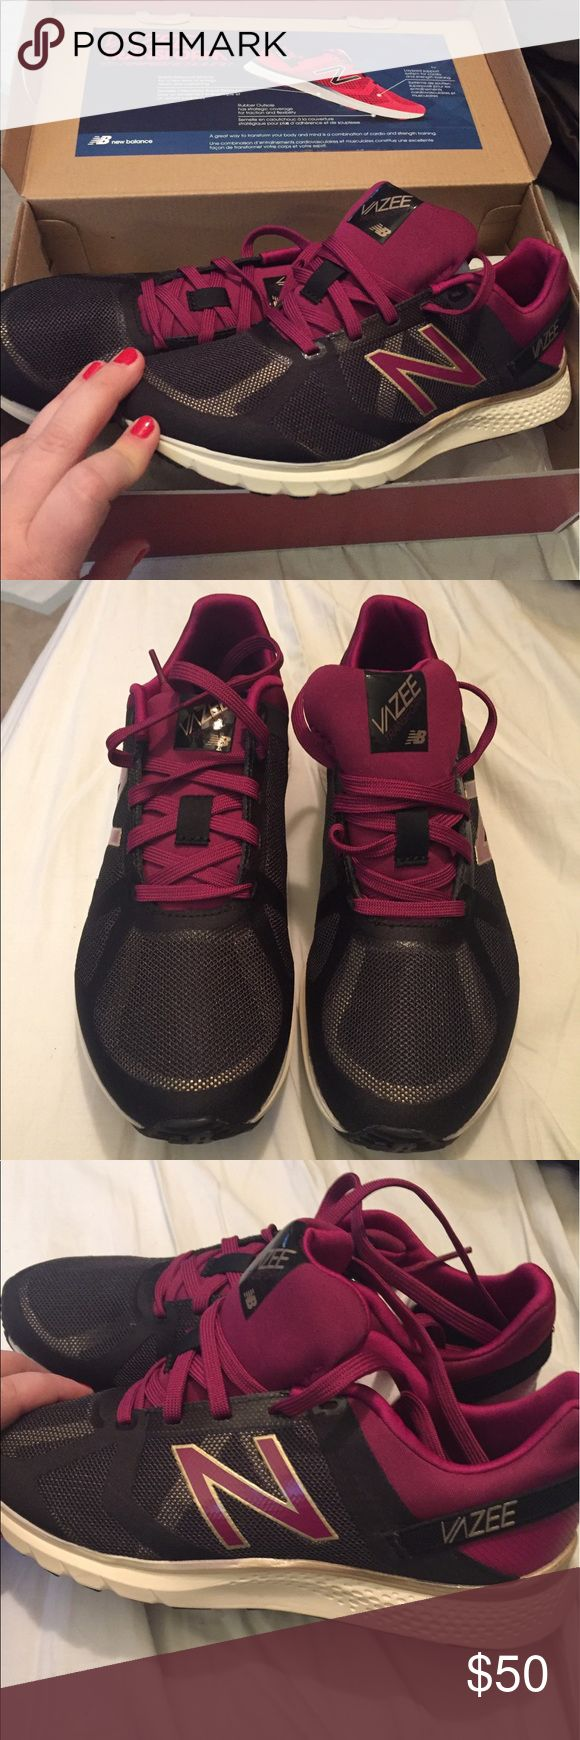 Brand new New Balance sneakers Women's size 7 New Balance Vazee Transform running sneakers in black and purple. Brand new in box, never been worn. New Balance Shoes Sneakers